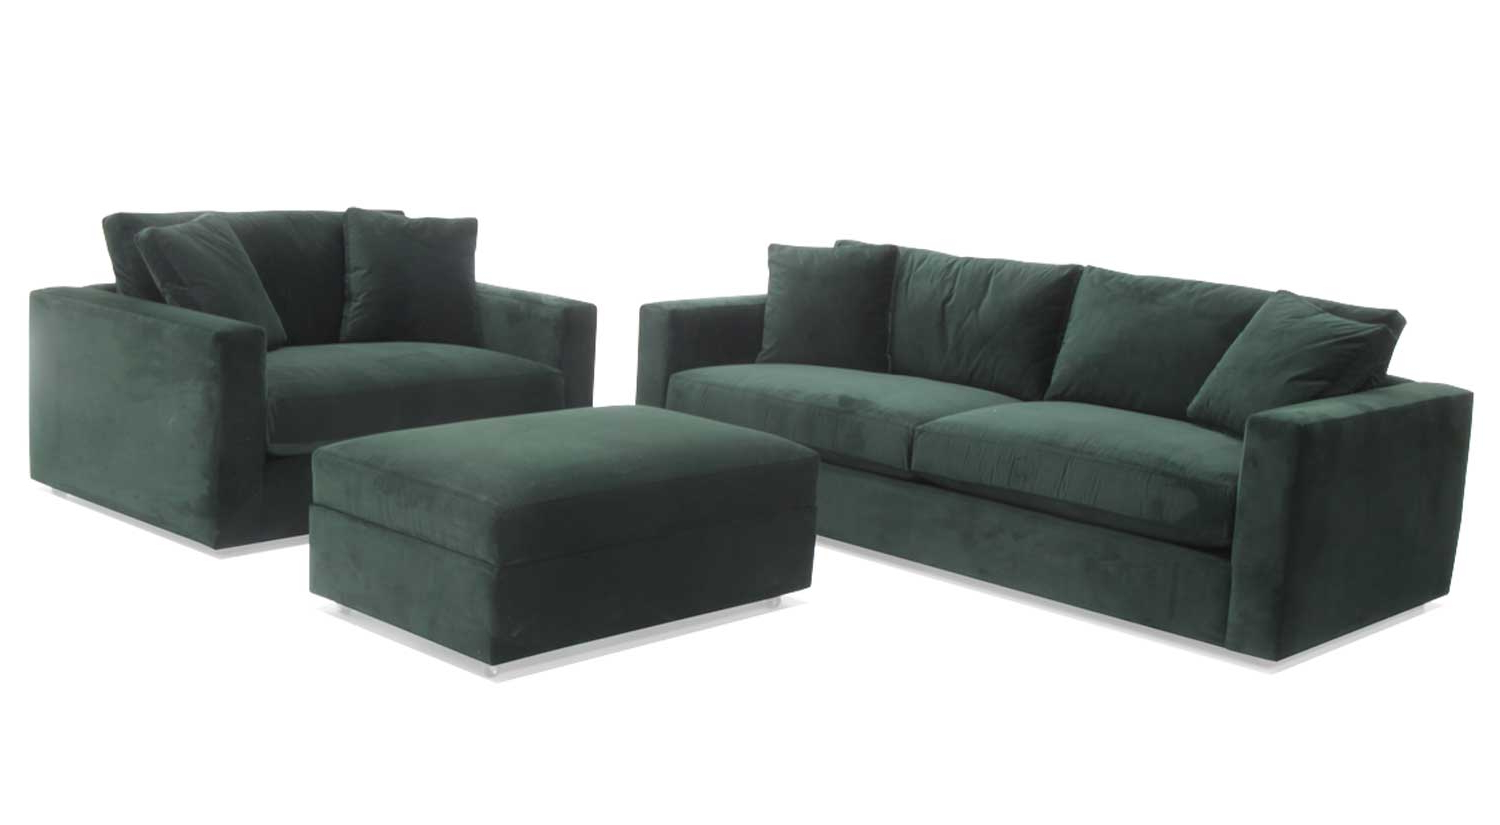 Widely Used Circle Furniture – Putnam Sofa (View 19 of 20)